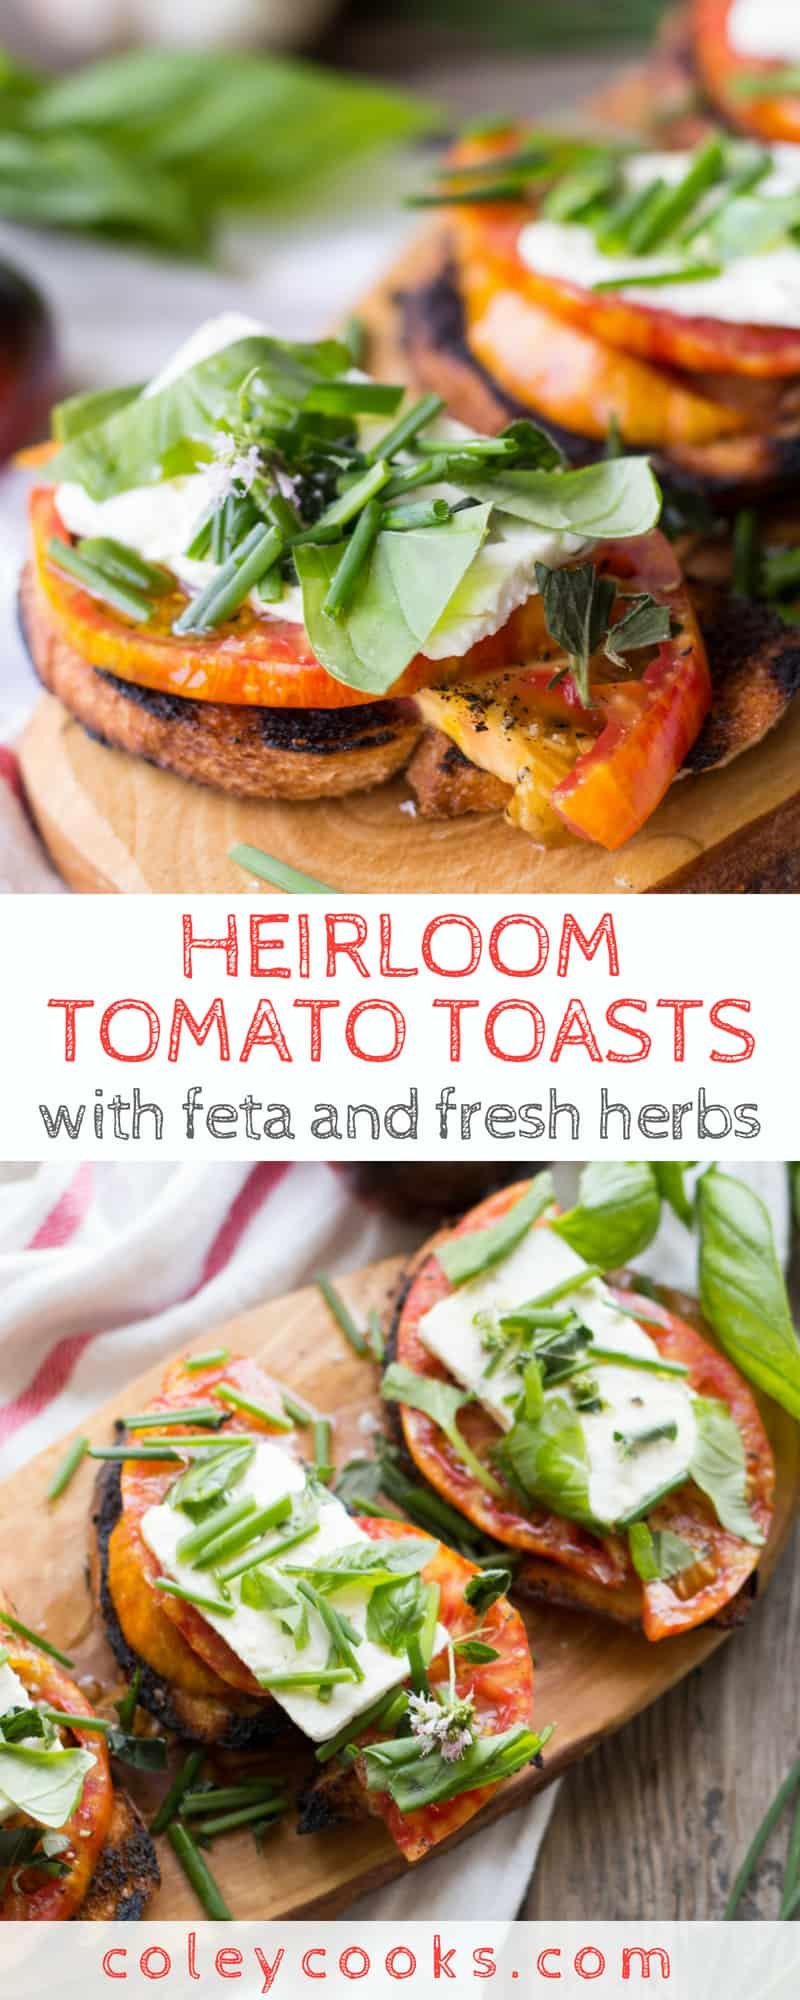 HEIRLOOM TOMATO TOASTS with FETA + HERBS | Easy summer appetizer made with juicy heirloom tomatoes, salty feta, and seasonal fresh herbs. #appetizer #heirloom #tomatoes #crostini #recipe #summer | ColeyCooks.com